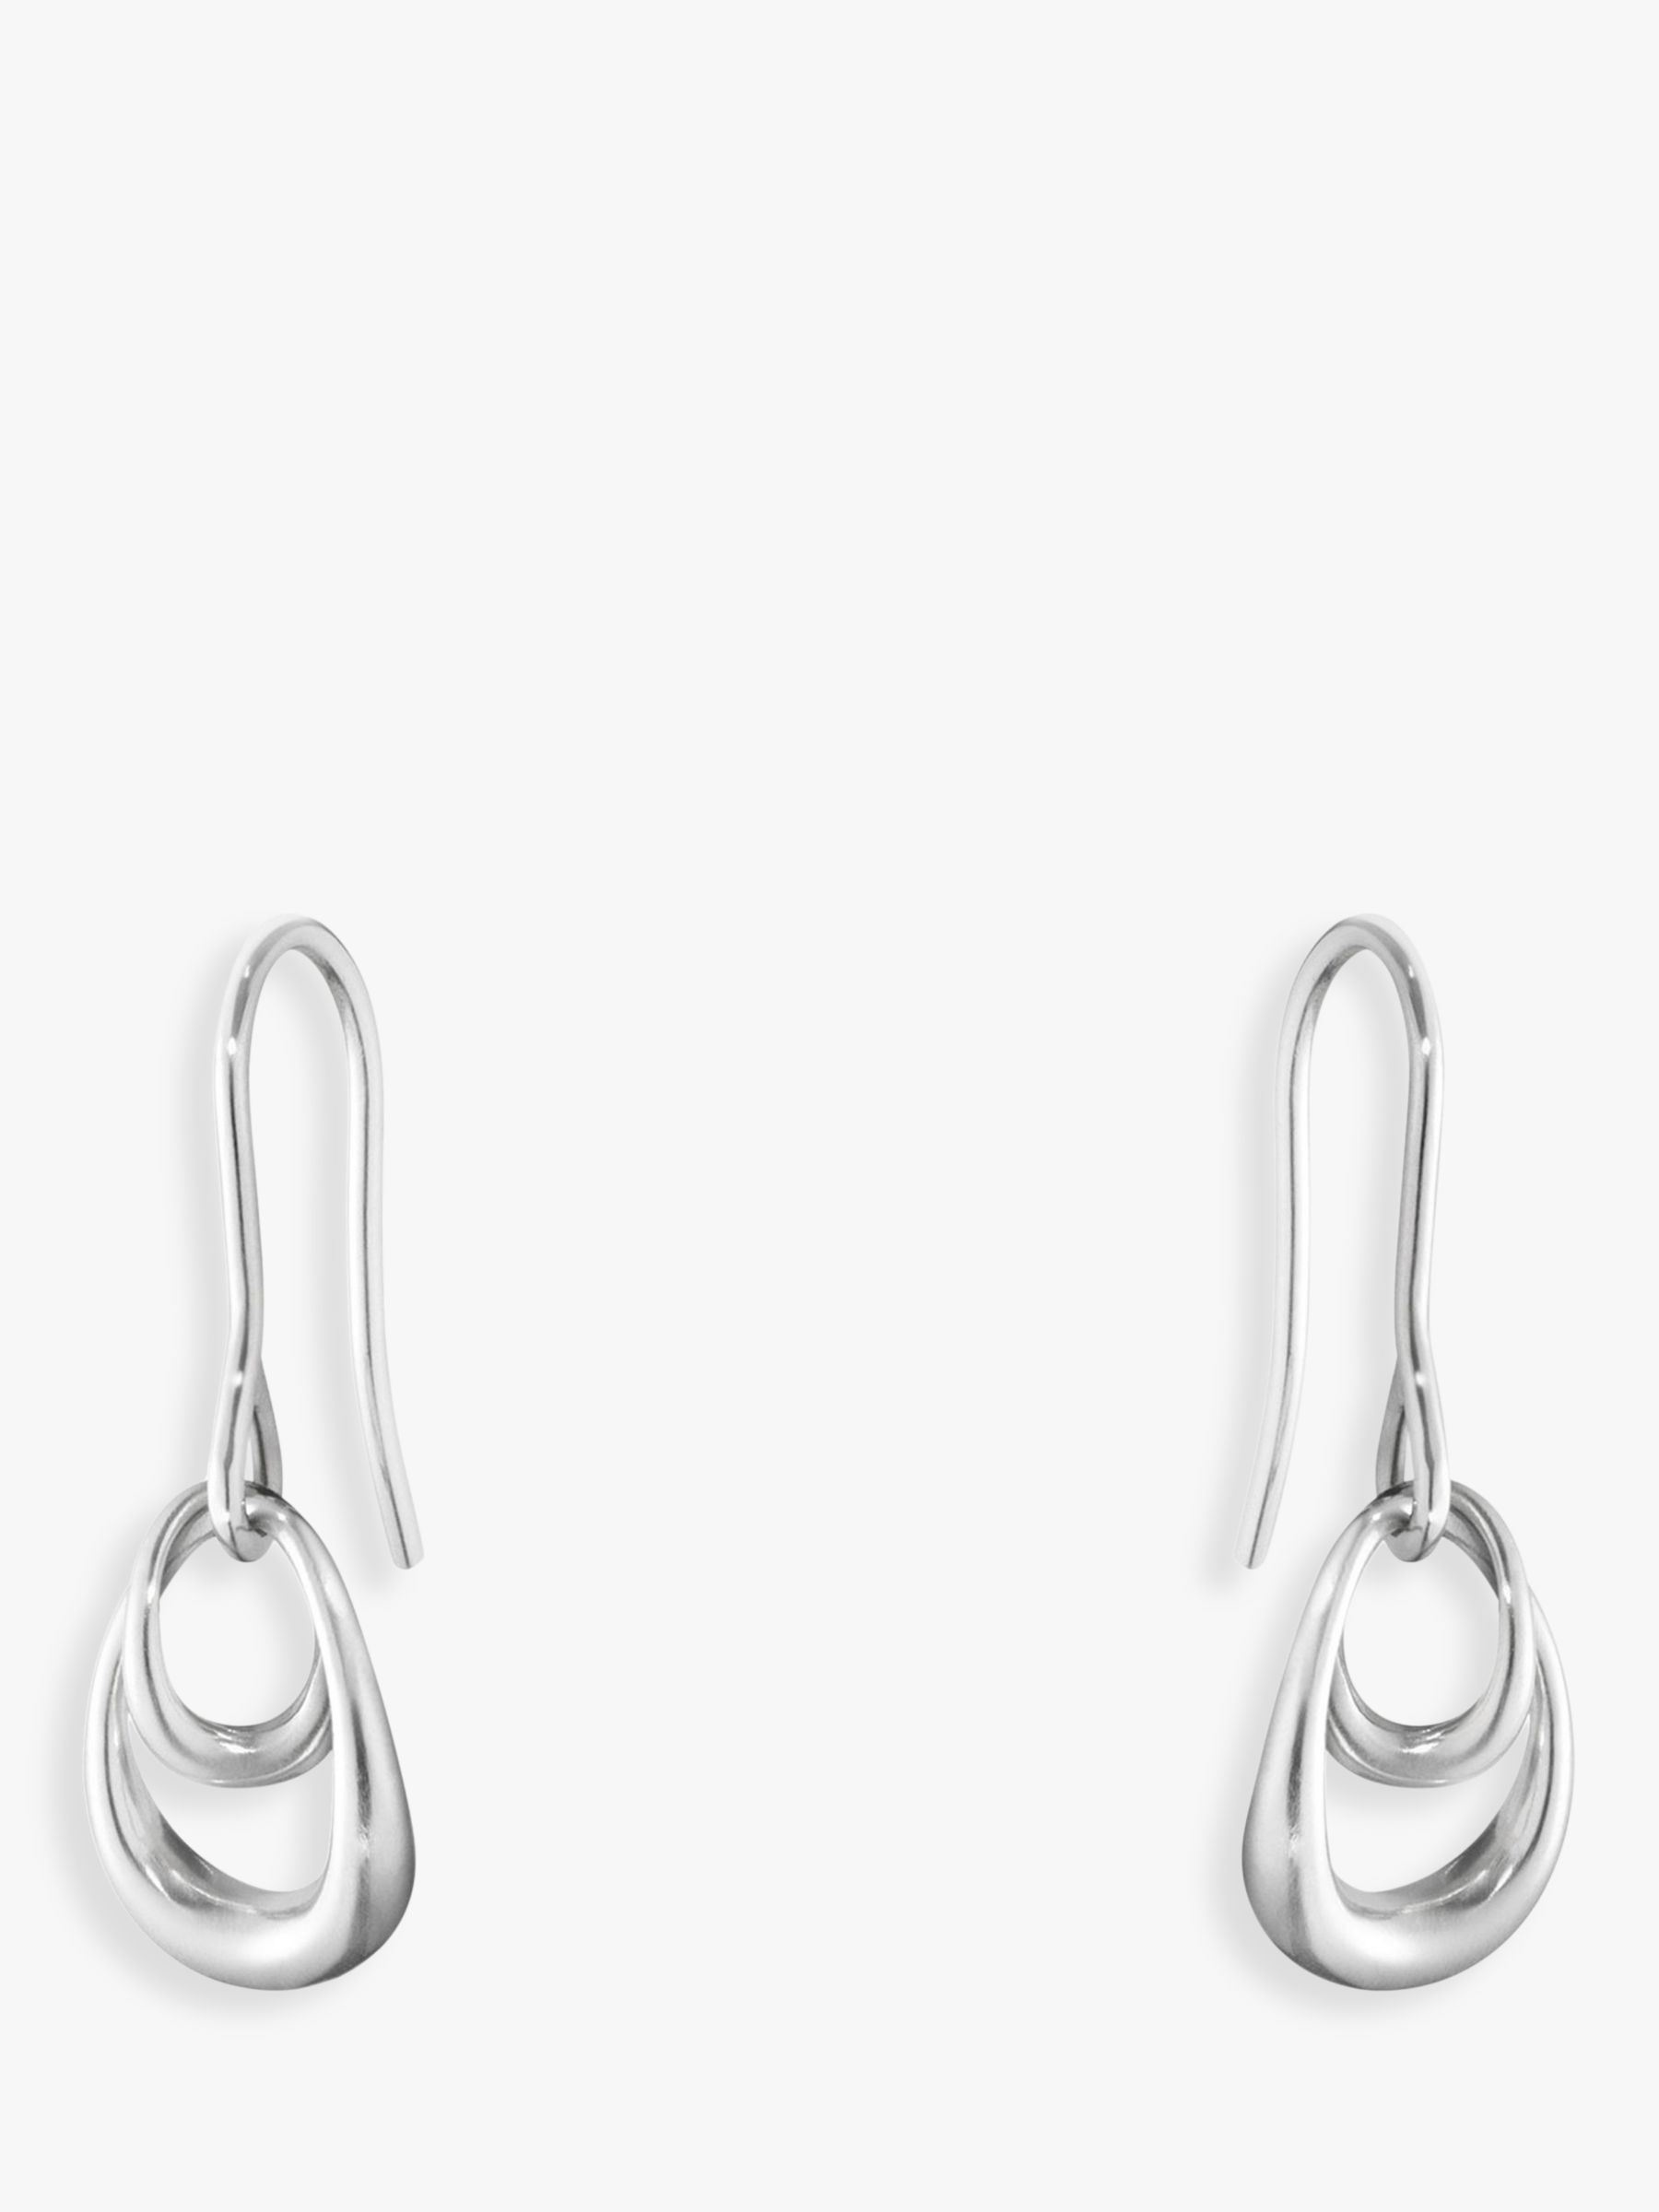 Georg Jensen Georg Jensen Offspring Sterling Silver Hook Earrings, Silver